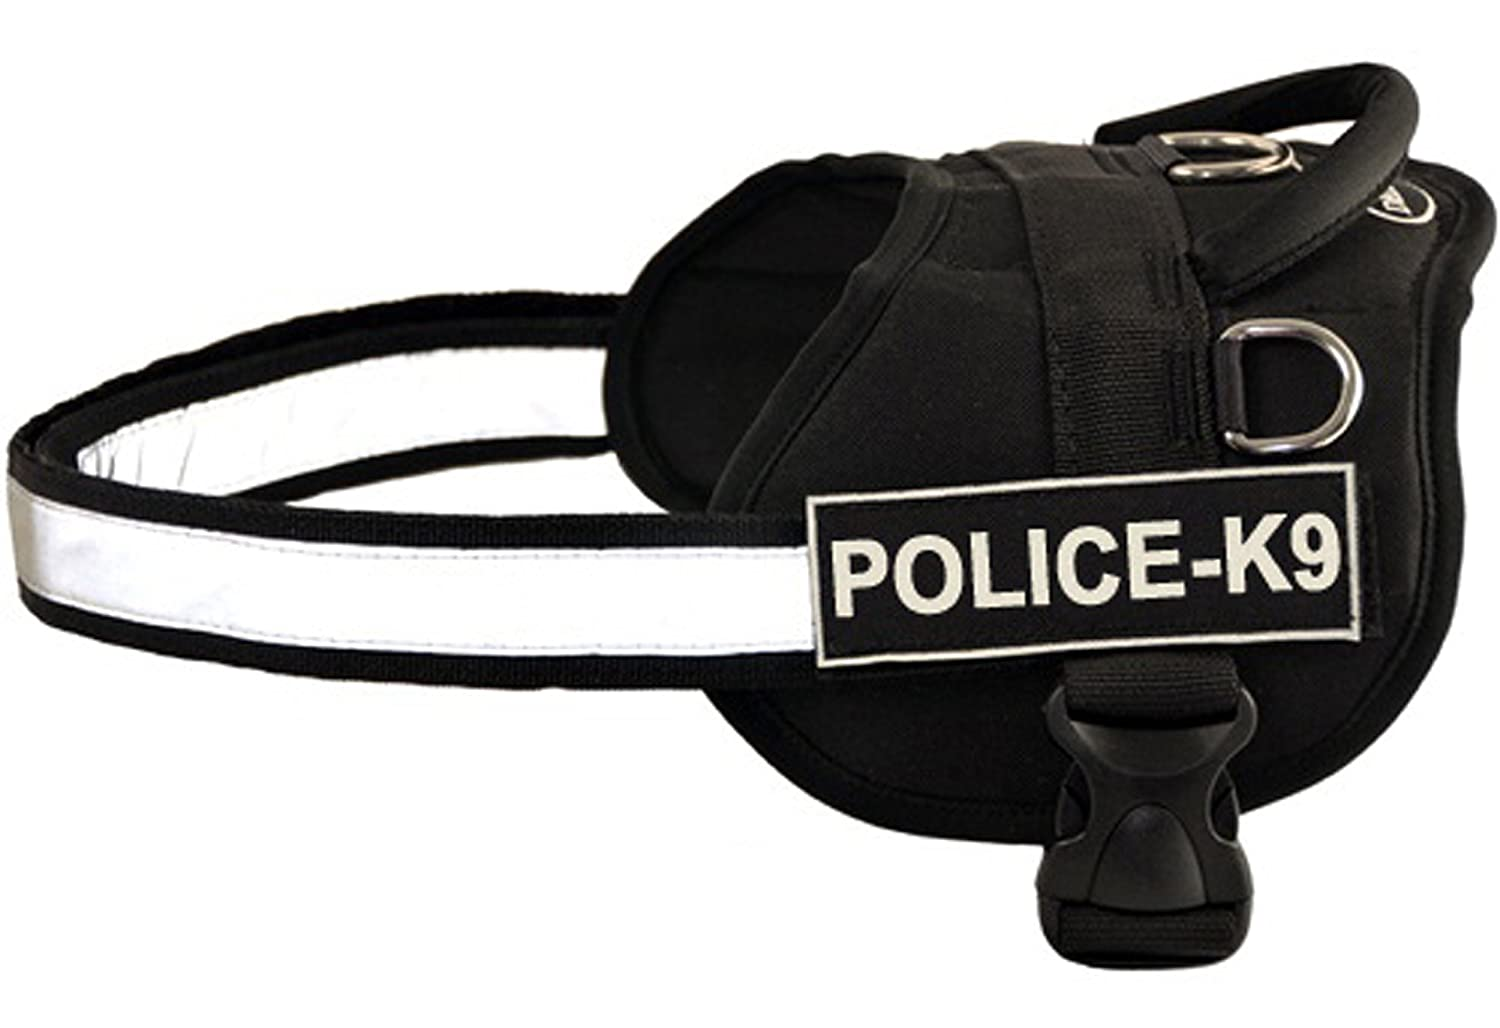 Dean & Tyler Works Harness, Police-K9, XX-Small-Fits Girth, 46cm to 53cm, Black White